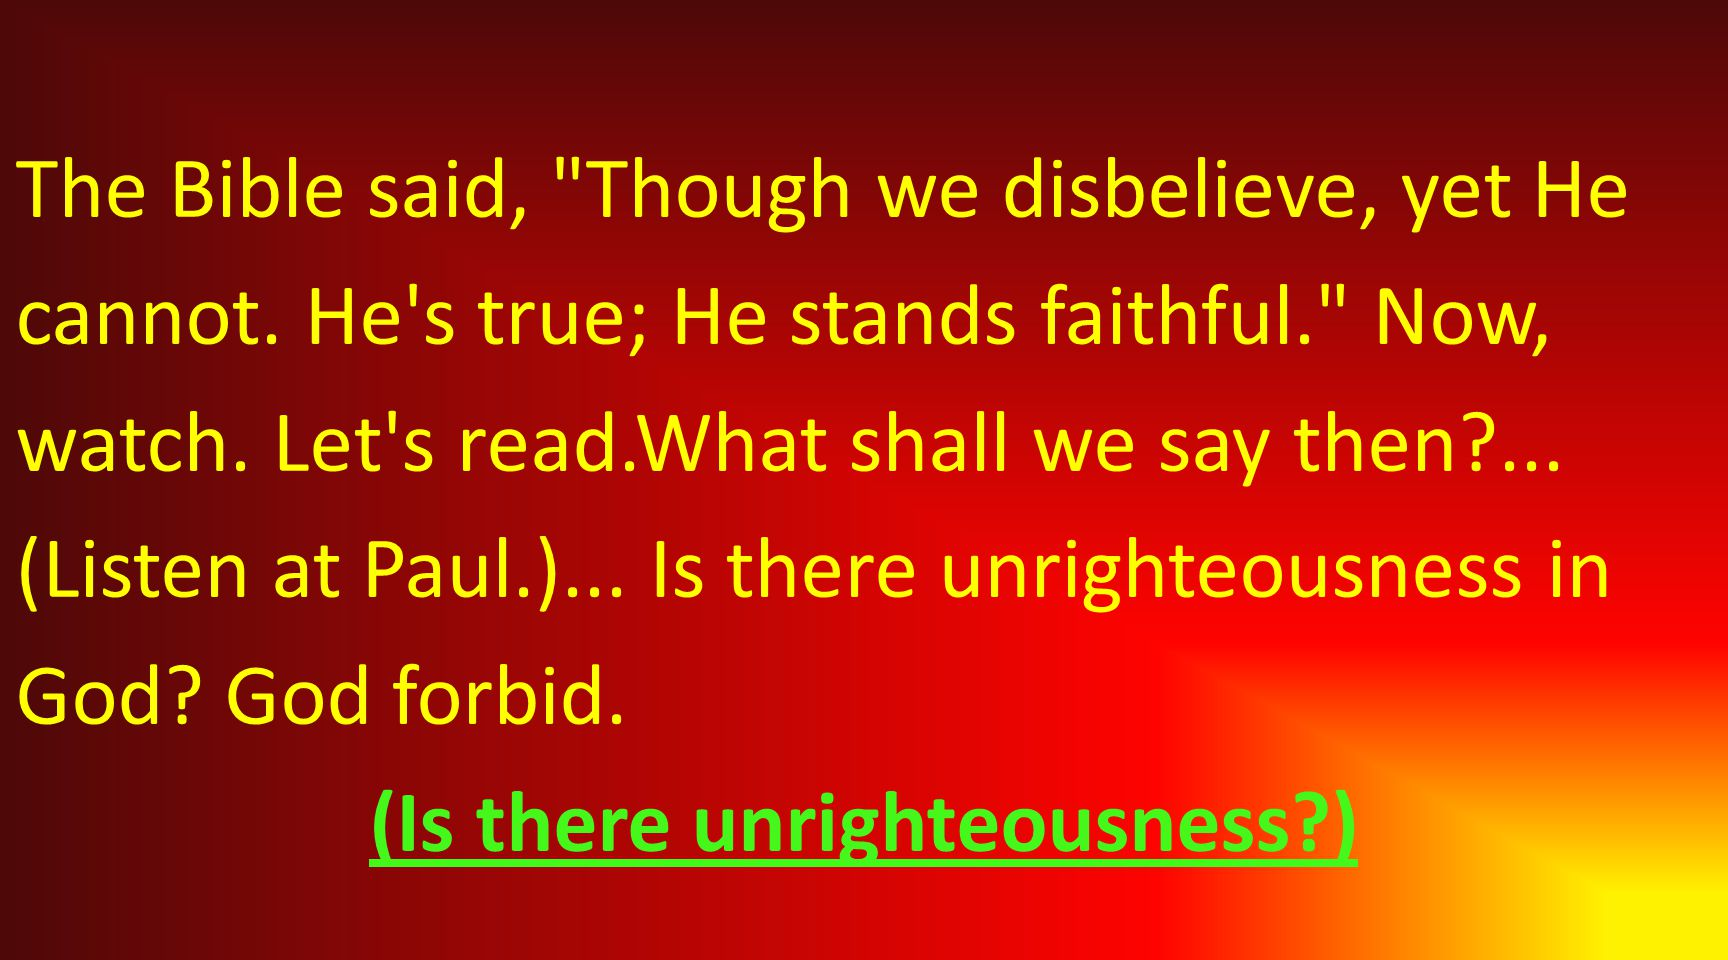 The Bible said, Though we disbelieve, yet He cannot.